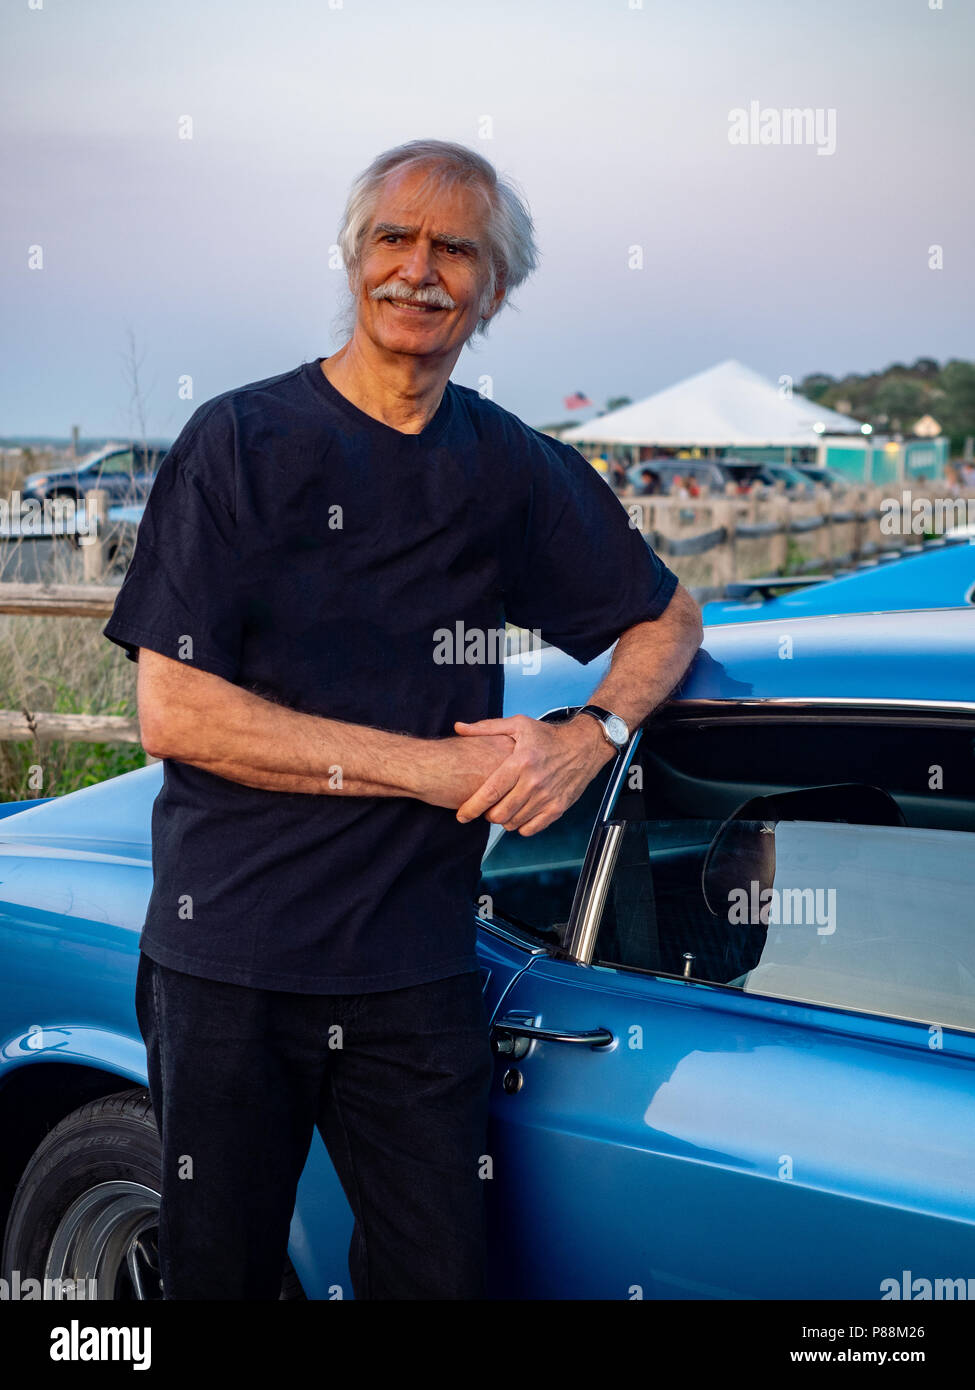 Man leaning against his 1969 blue classic Mustang at car show, The Hamptons, New York, USA. - Stock Image